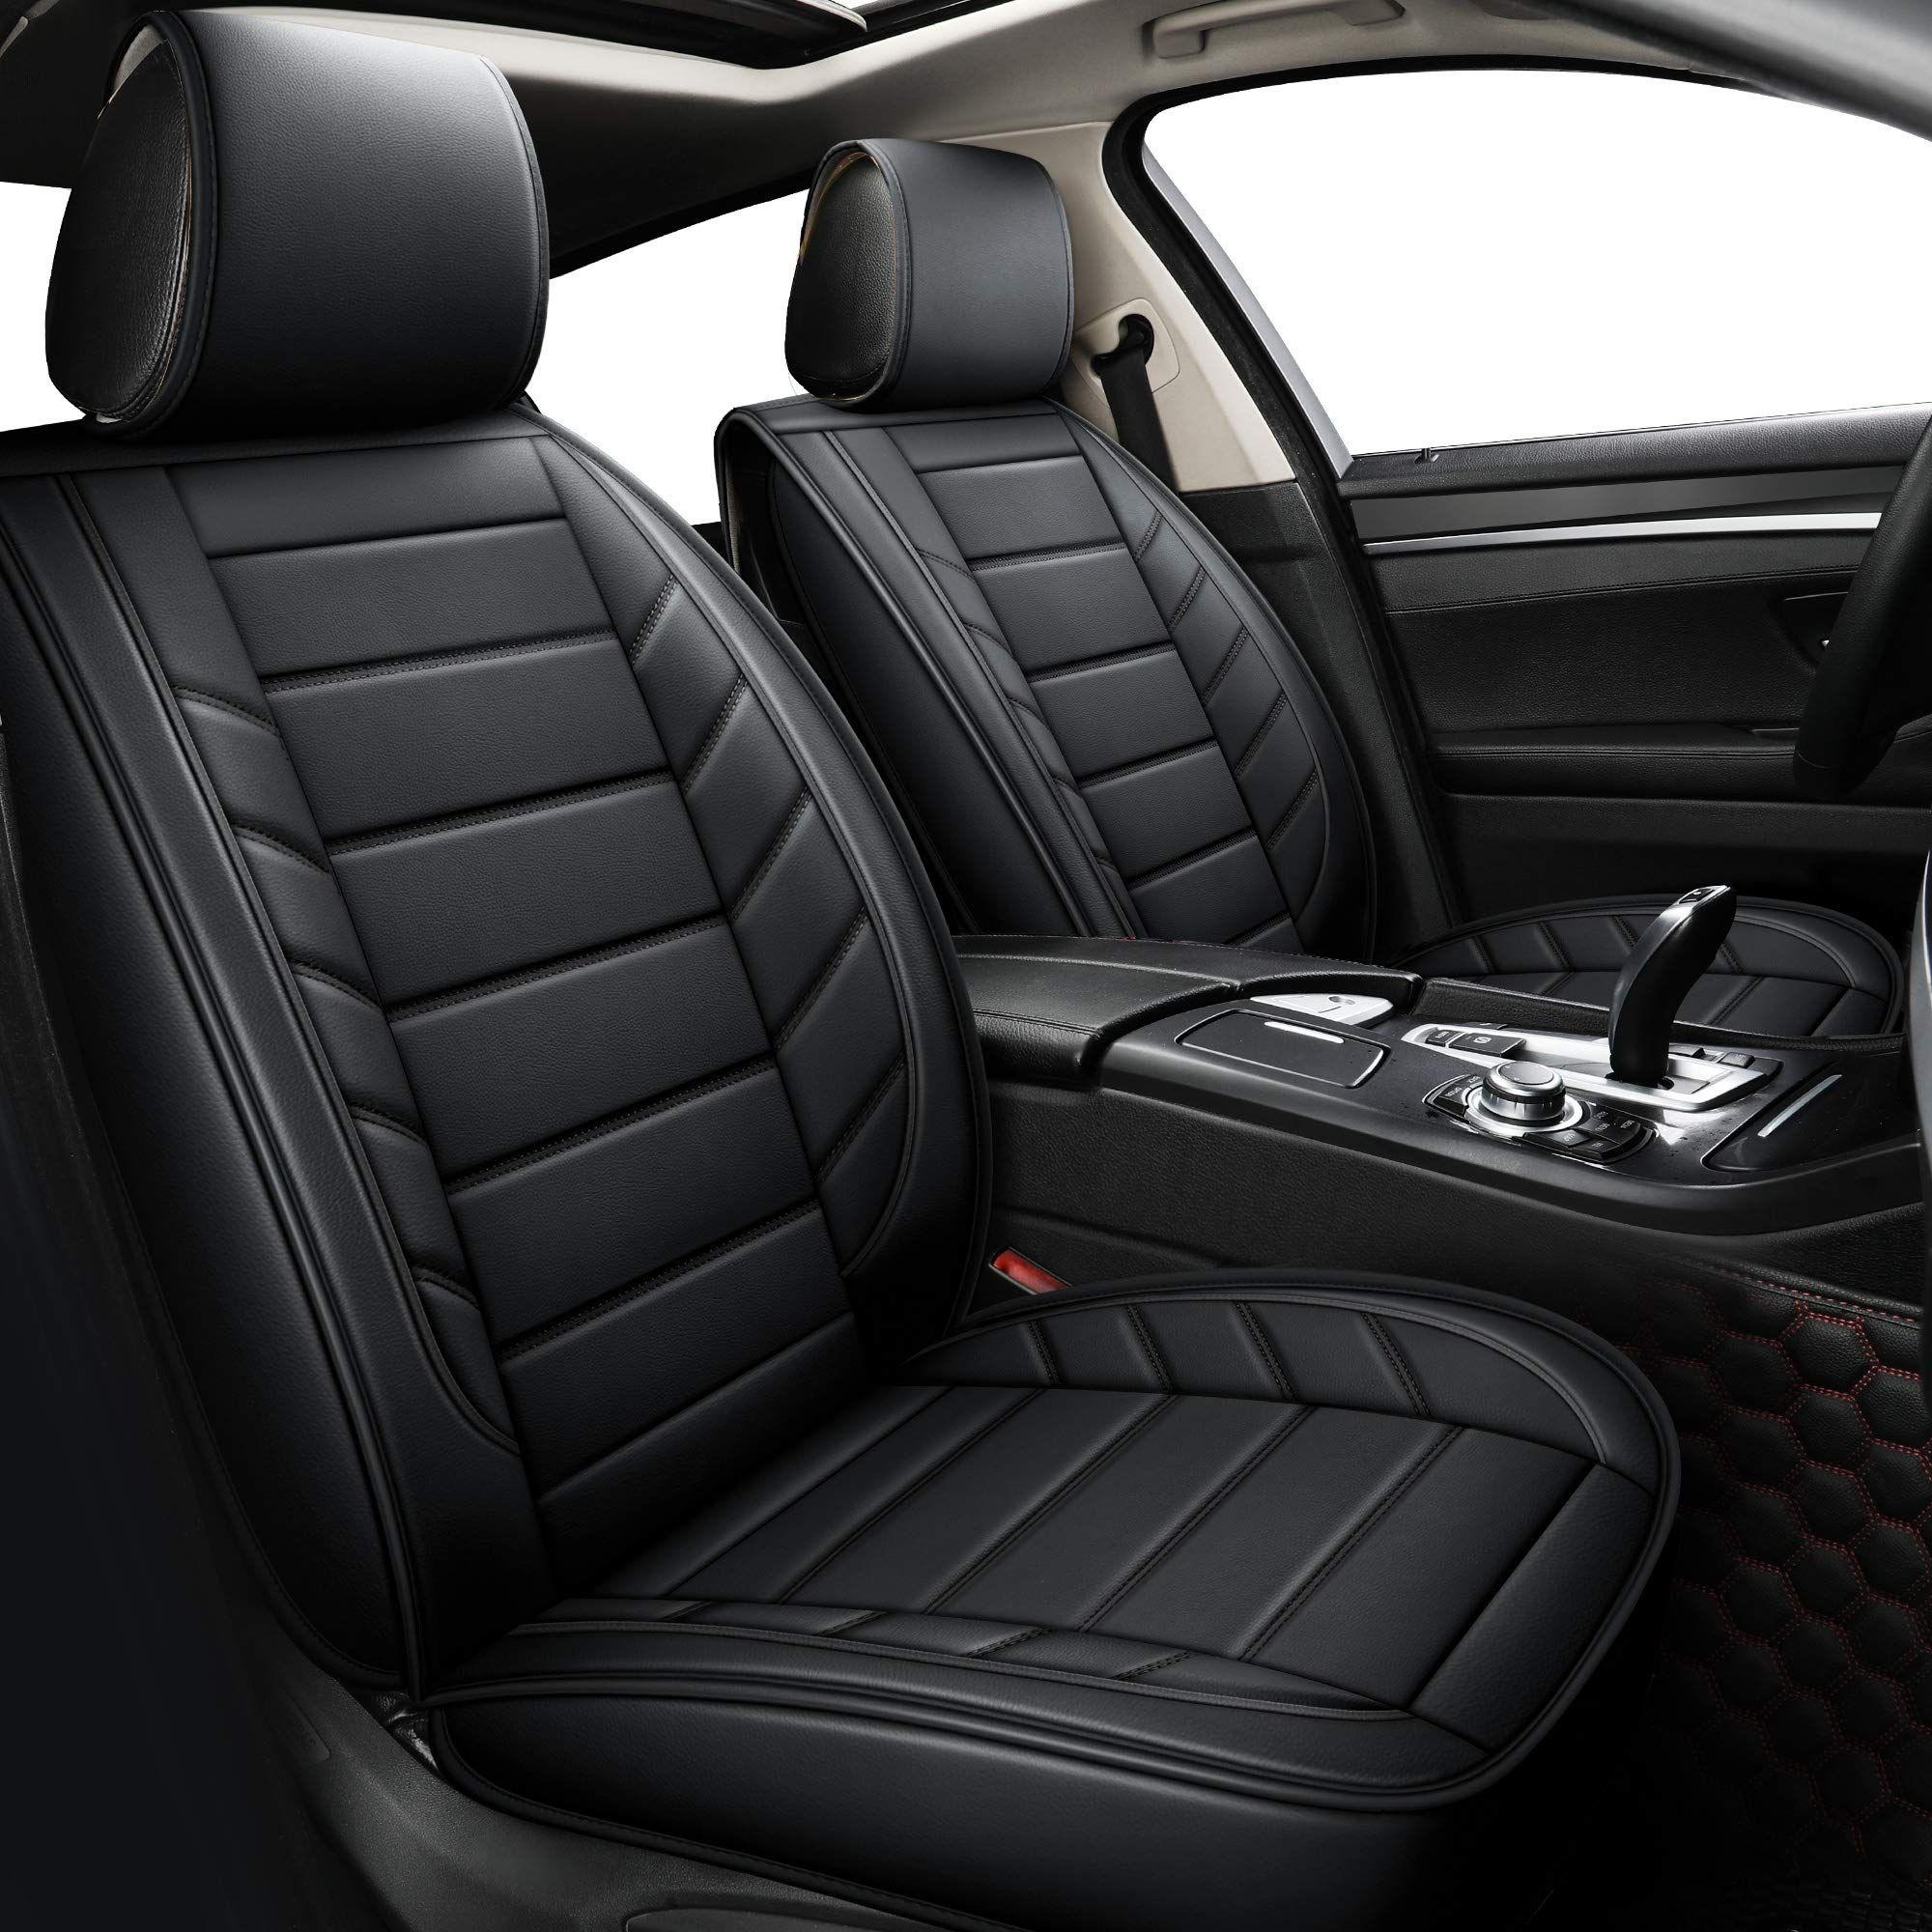 LUCKYMAN CLUB Car Seat Covers fit Sedan SUV fit for Nissan